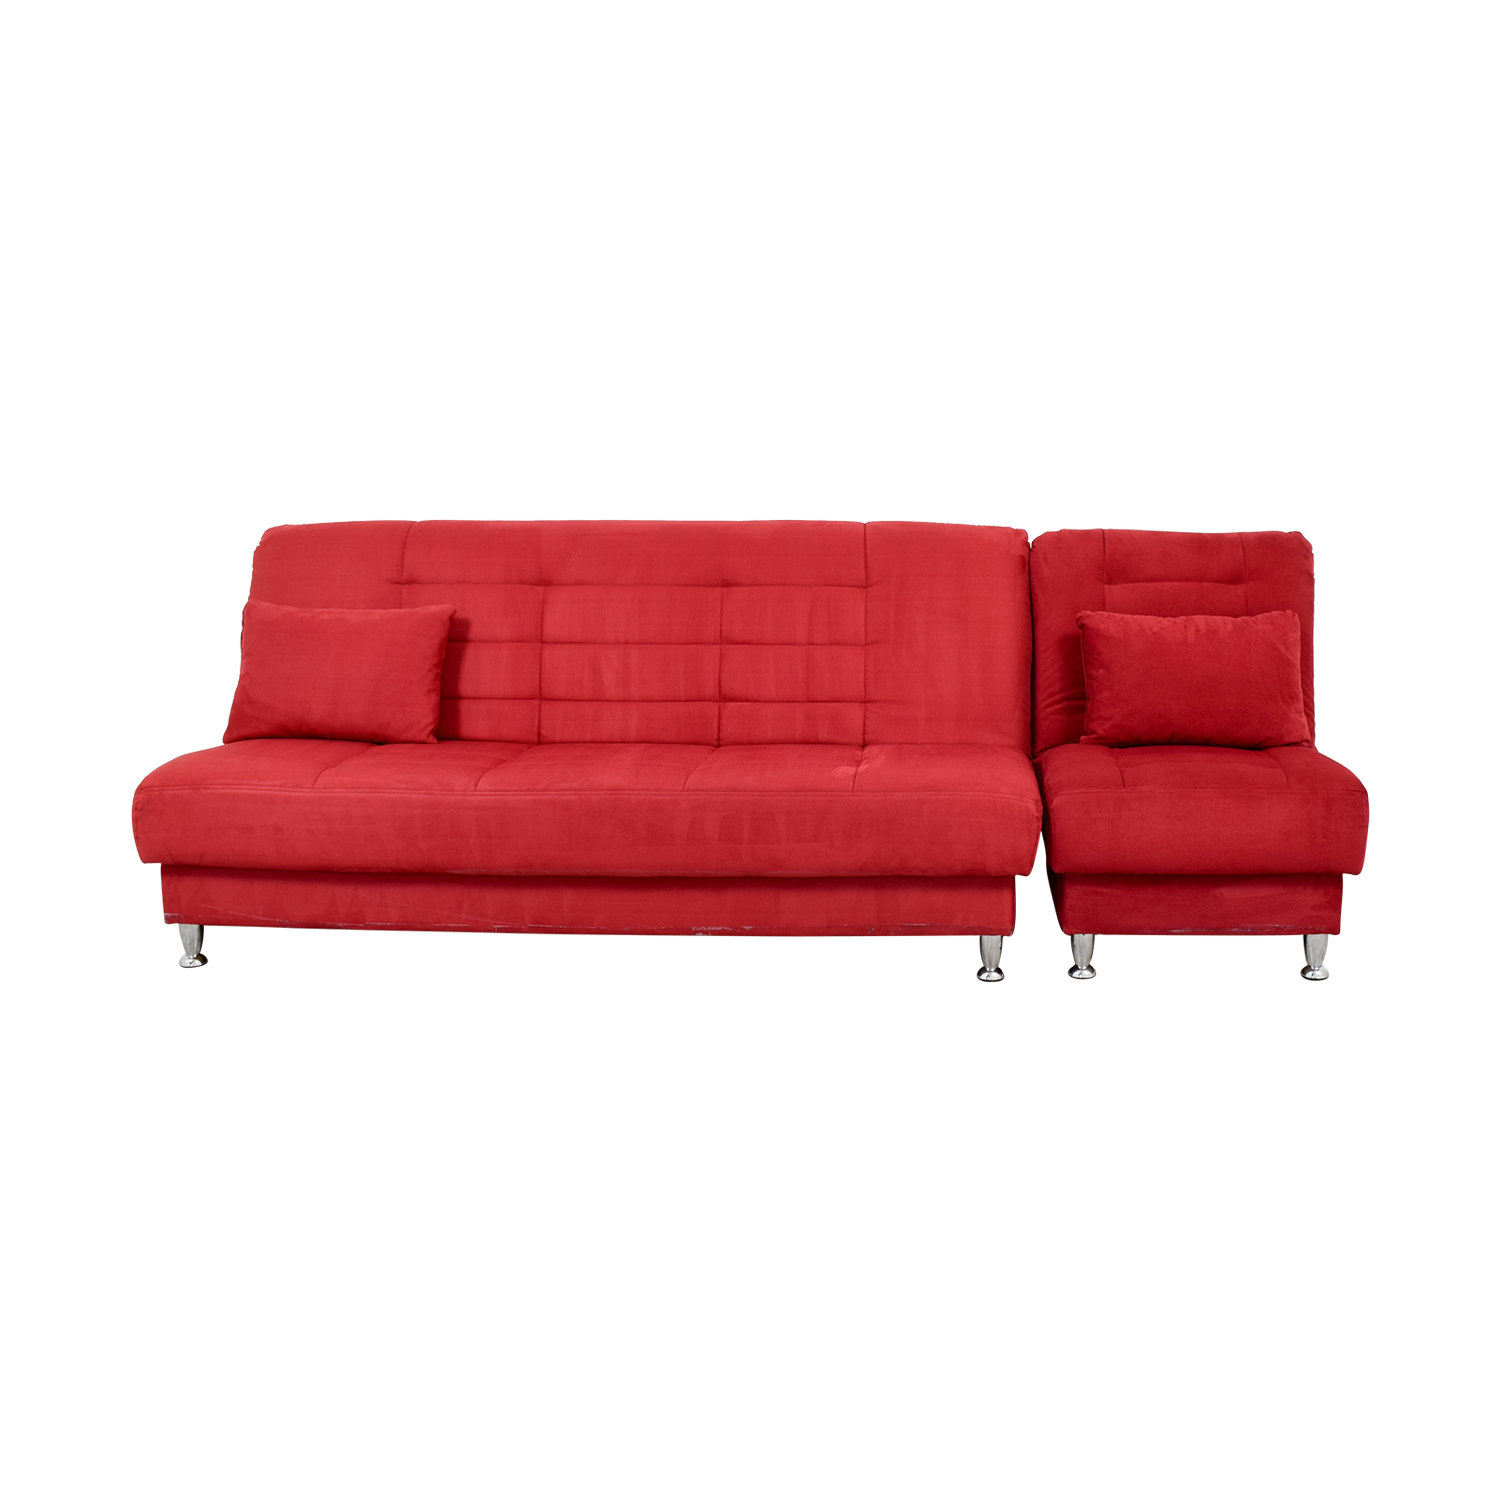 buy Latitude Red Sofa Bed with Storage Latitude